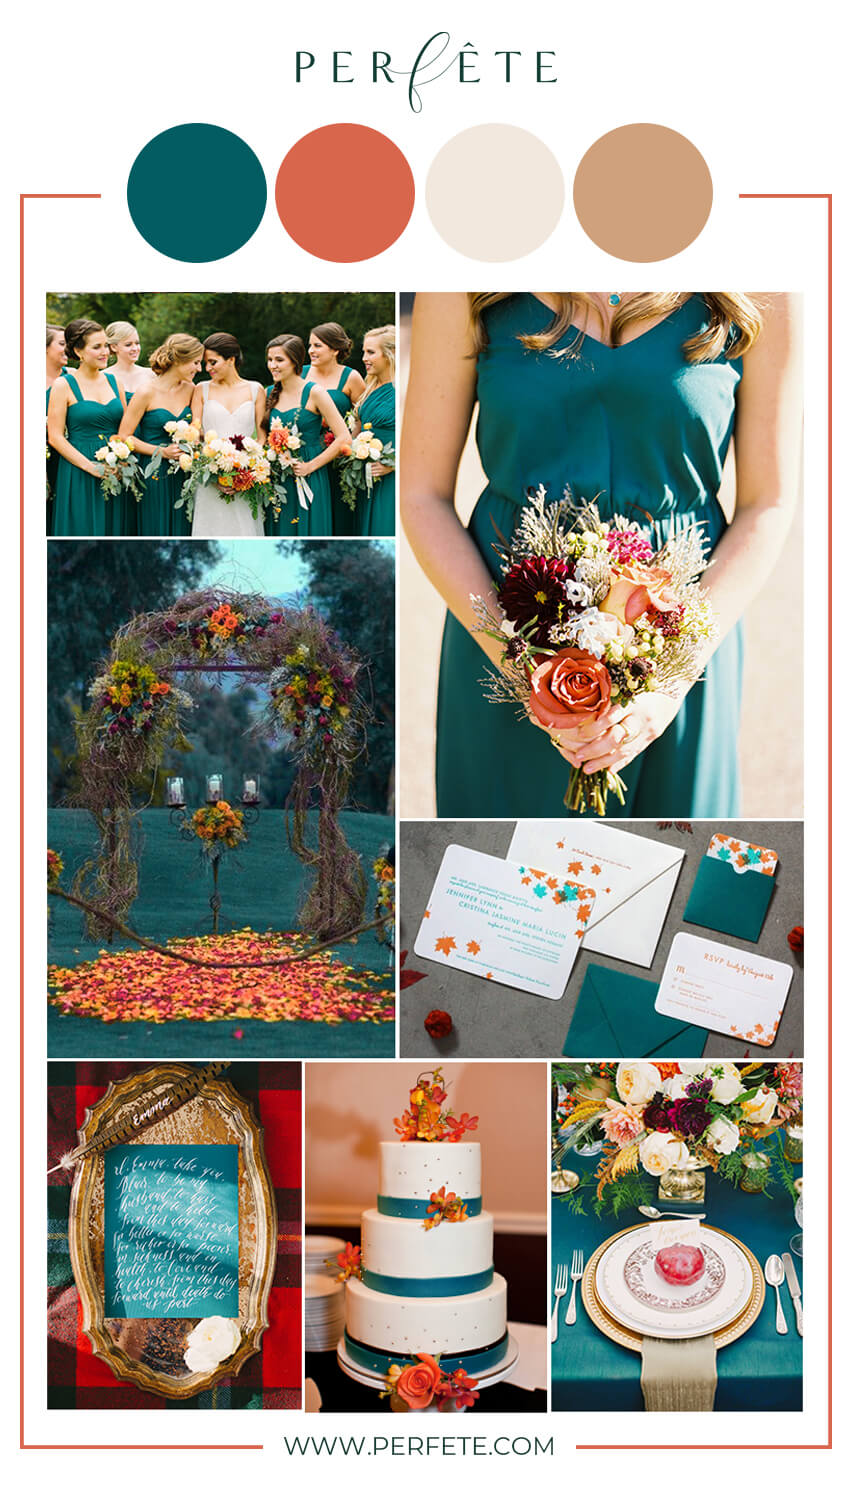 10 Fall Wedding Color Ideas to Consider - Perfete